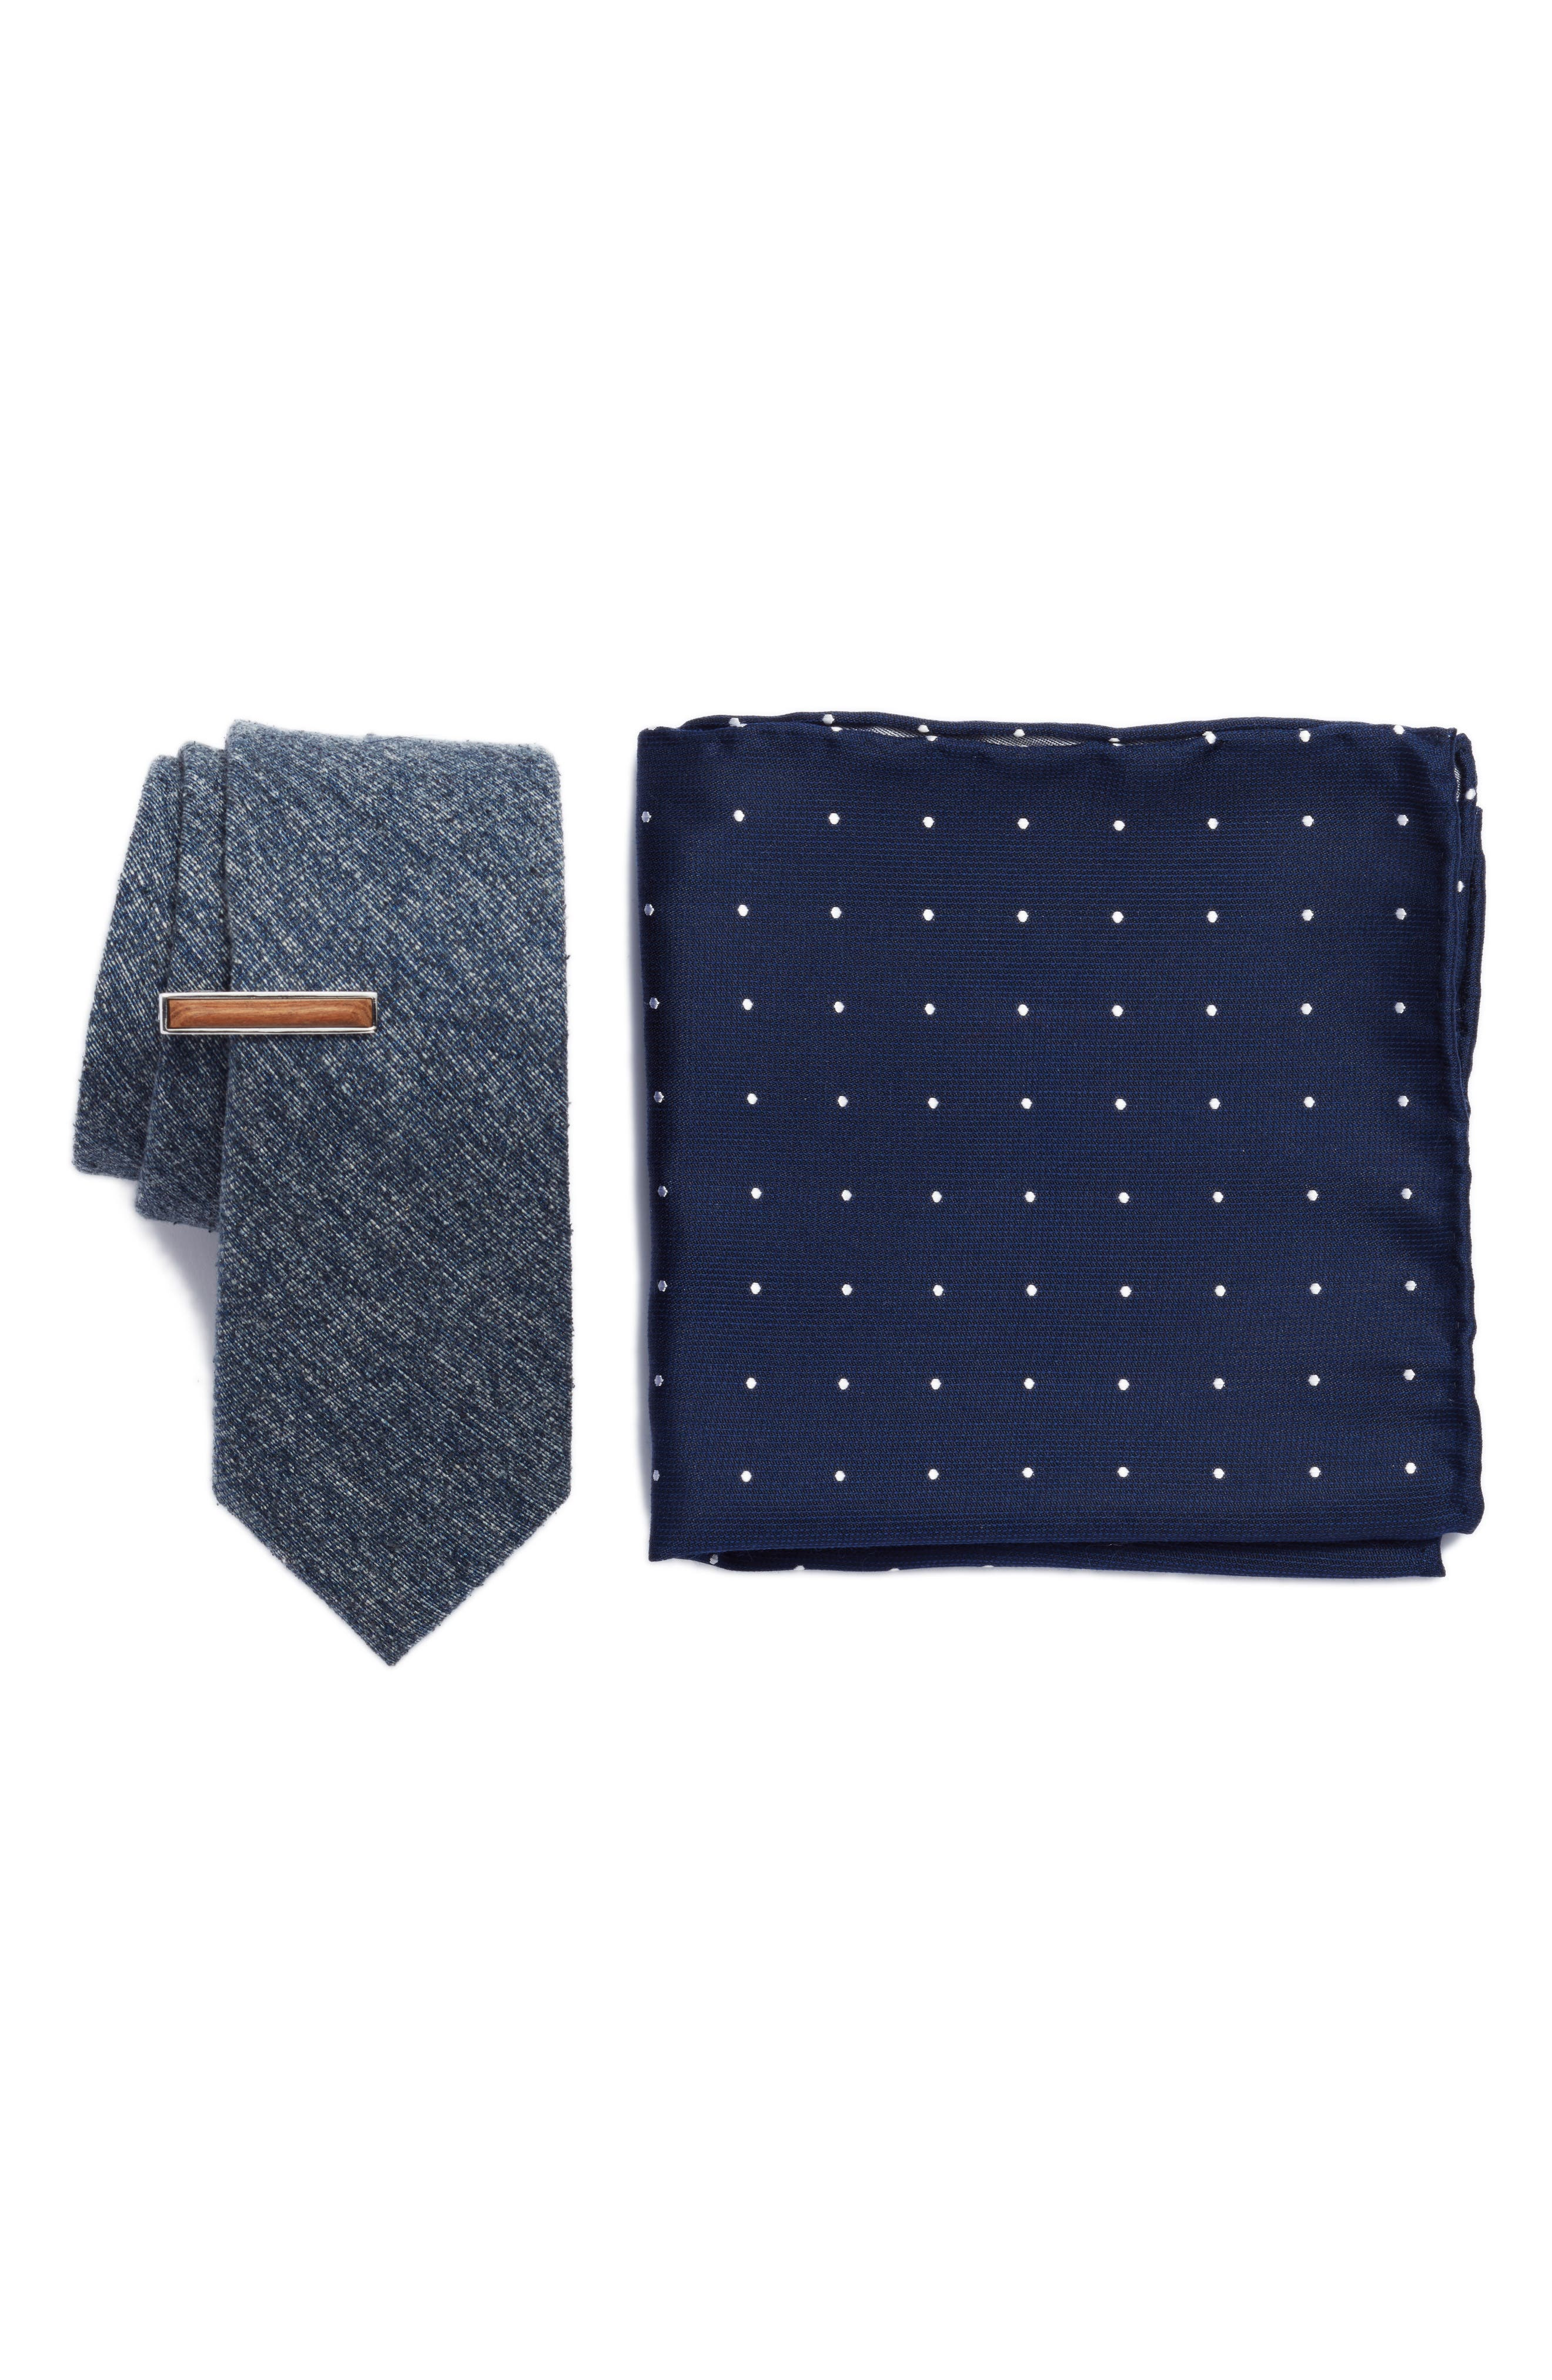 West Ridge Solid 3-Piece Skinny Tie Style Box,                             Main thumbnail 1, color,                             410